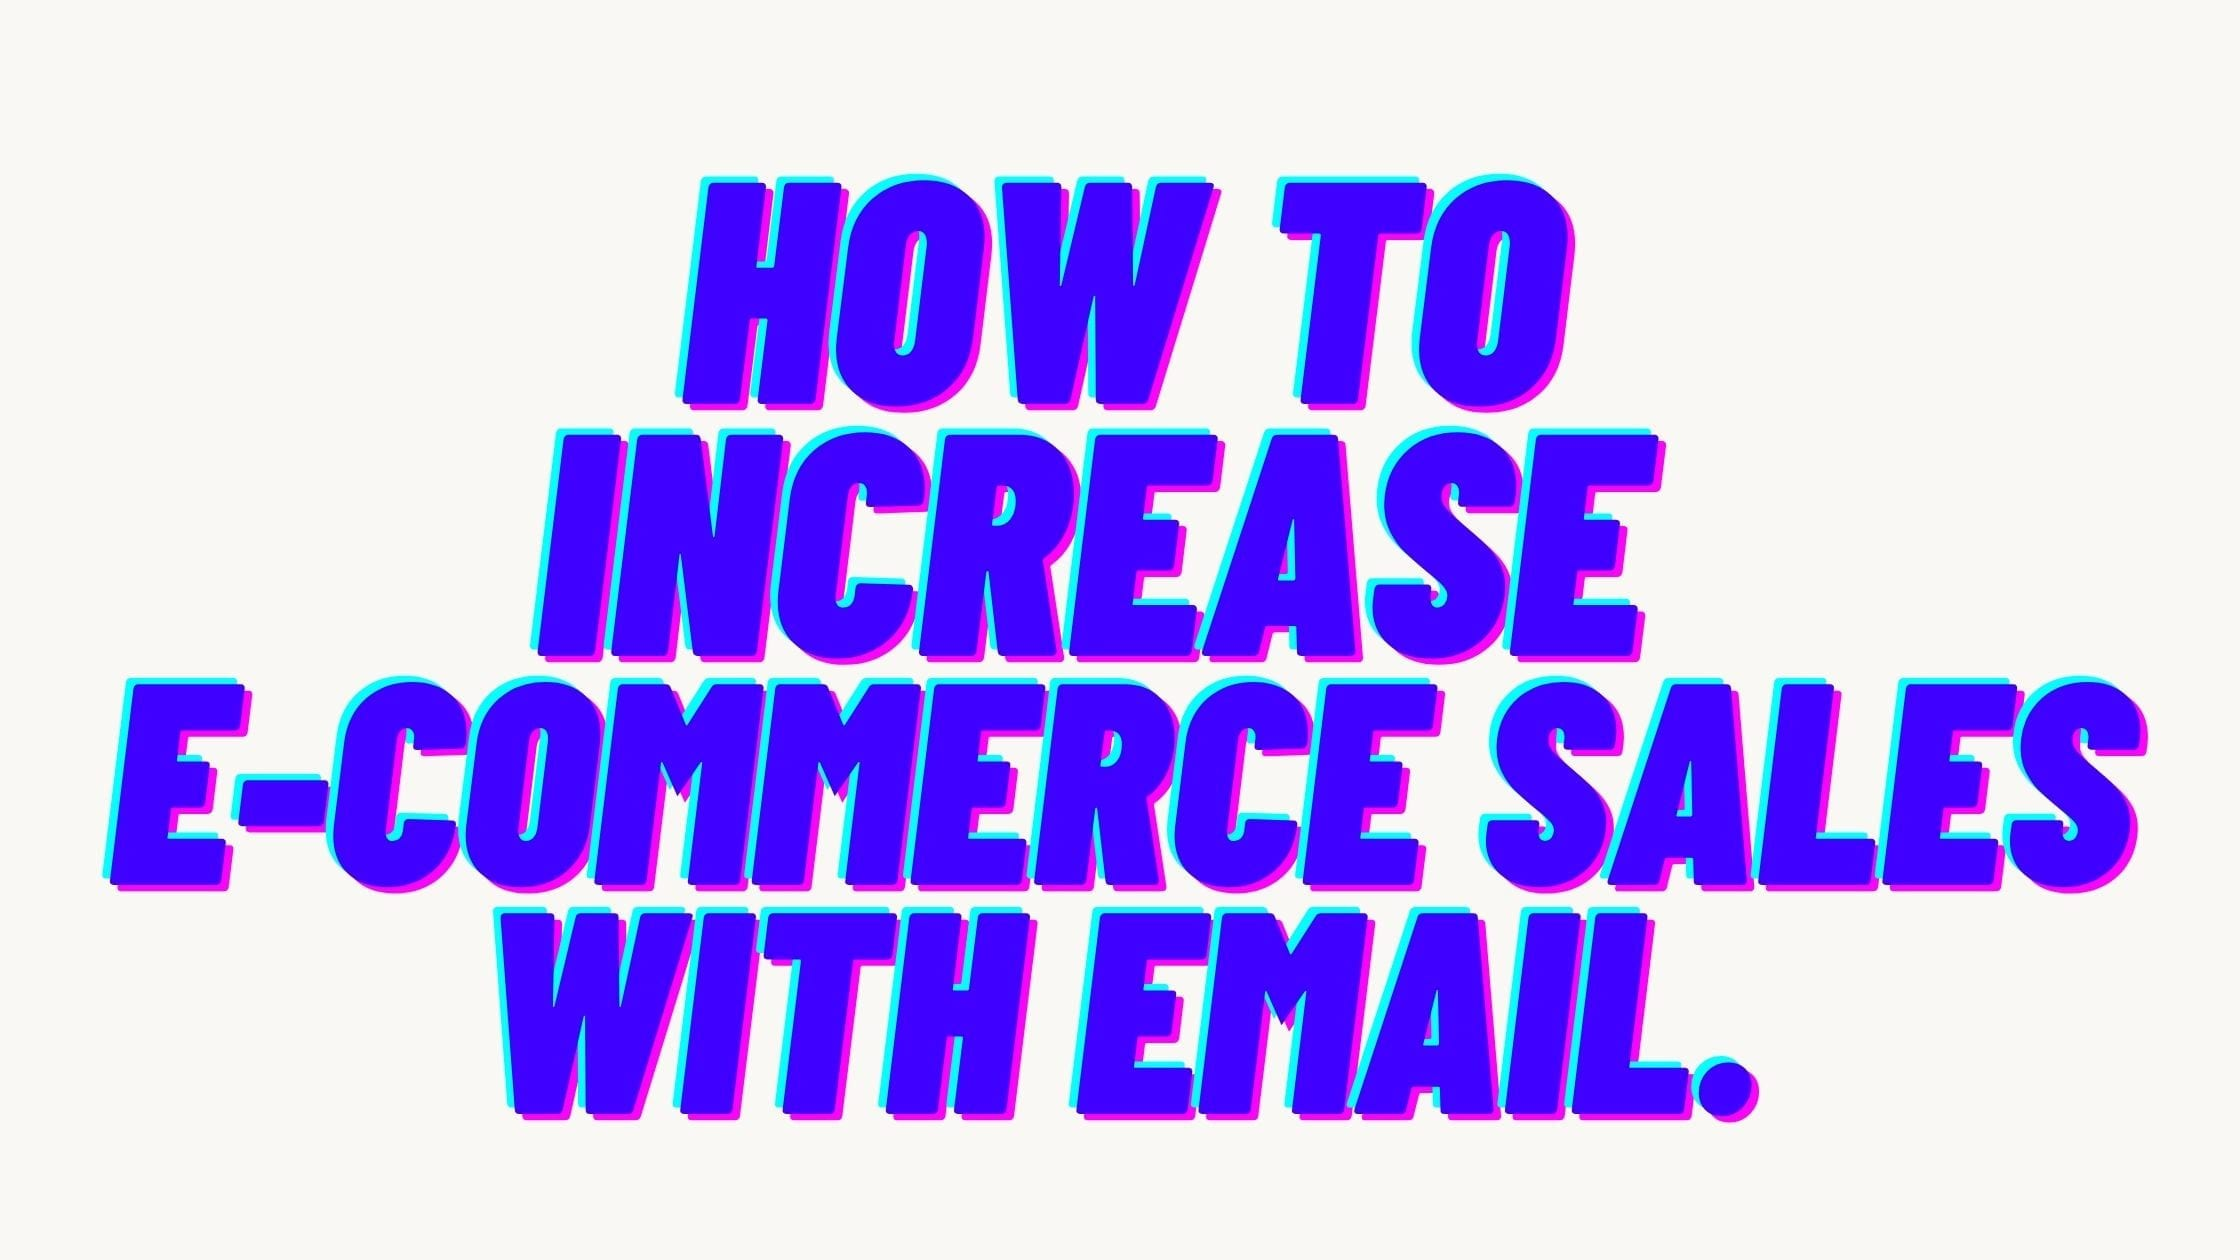 How to write email copy that drives click-throughs.